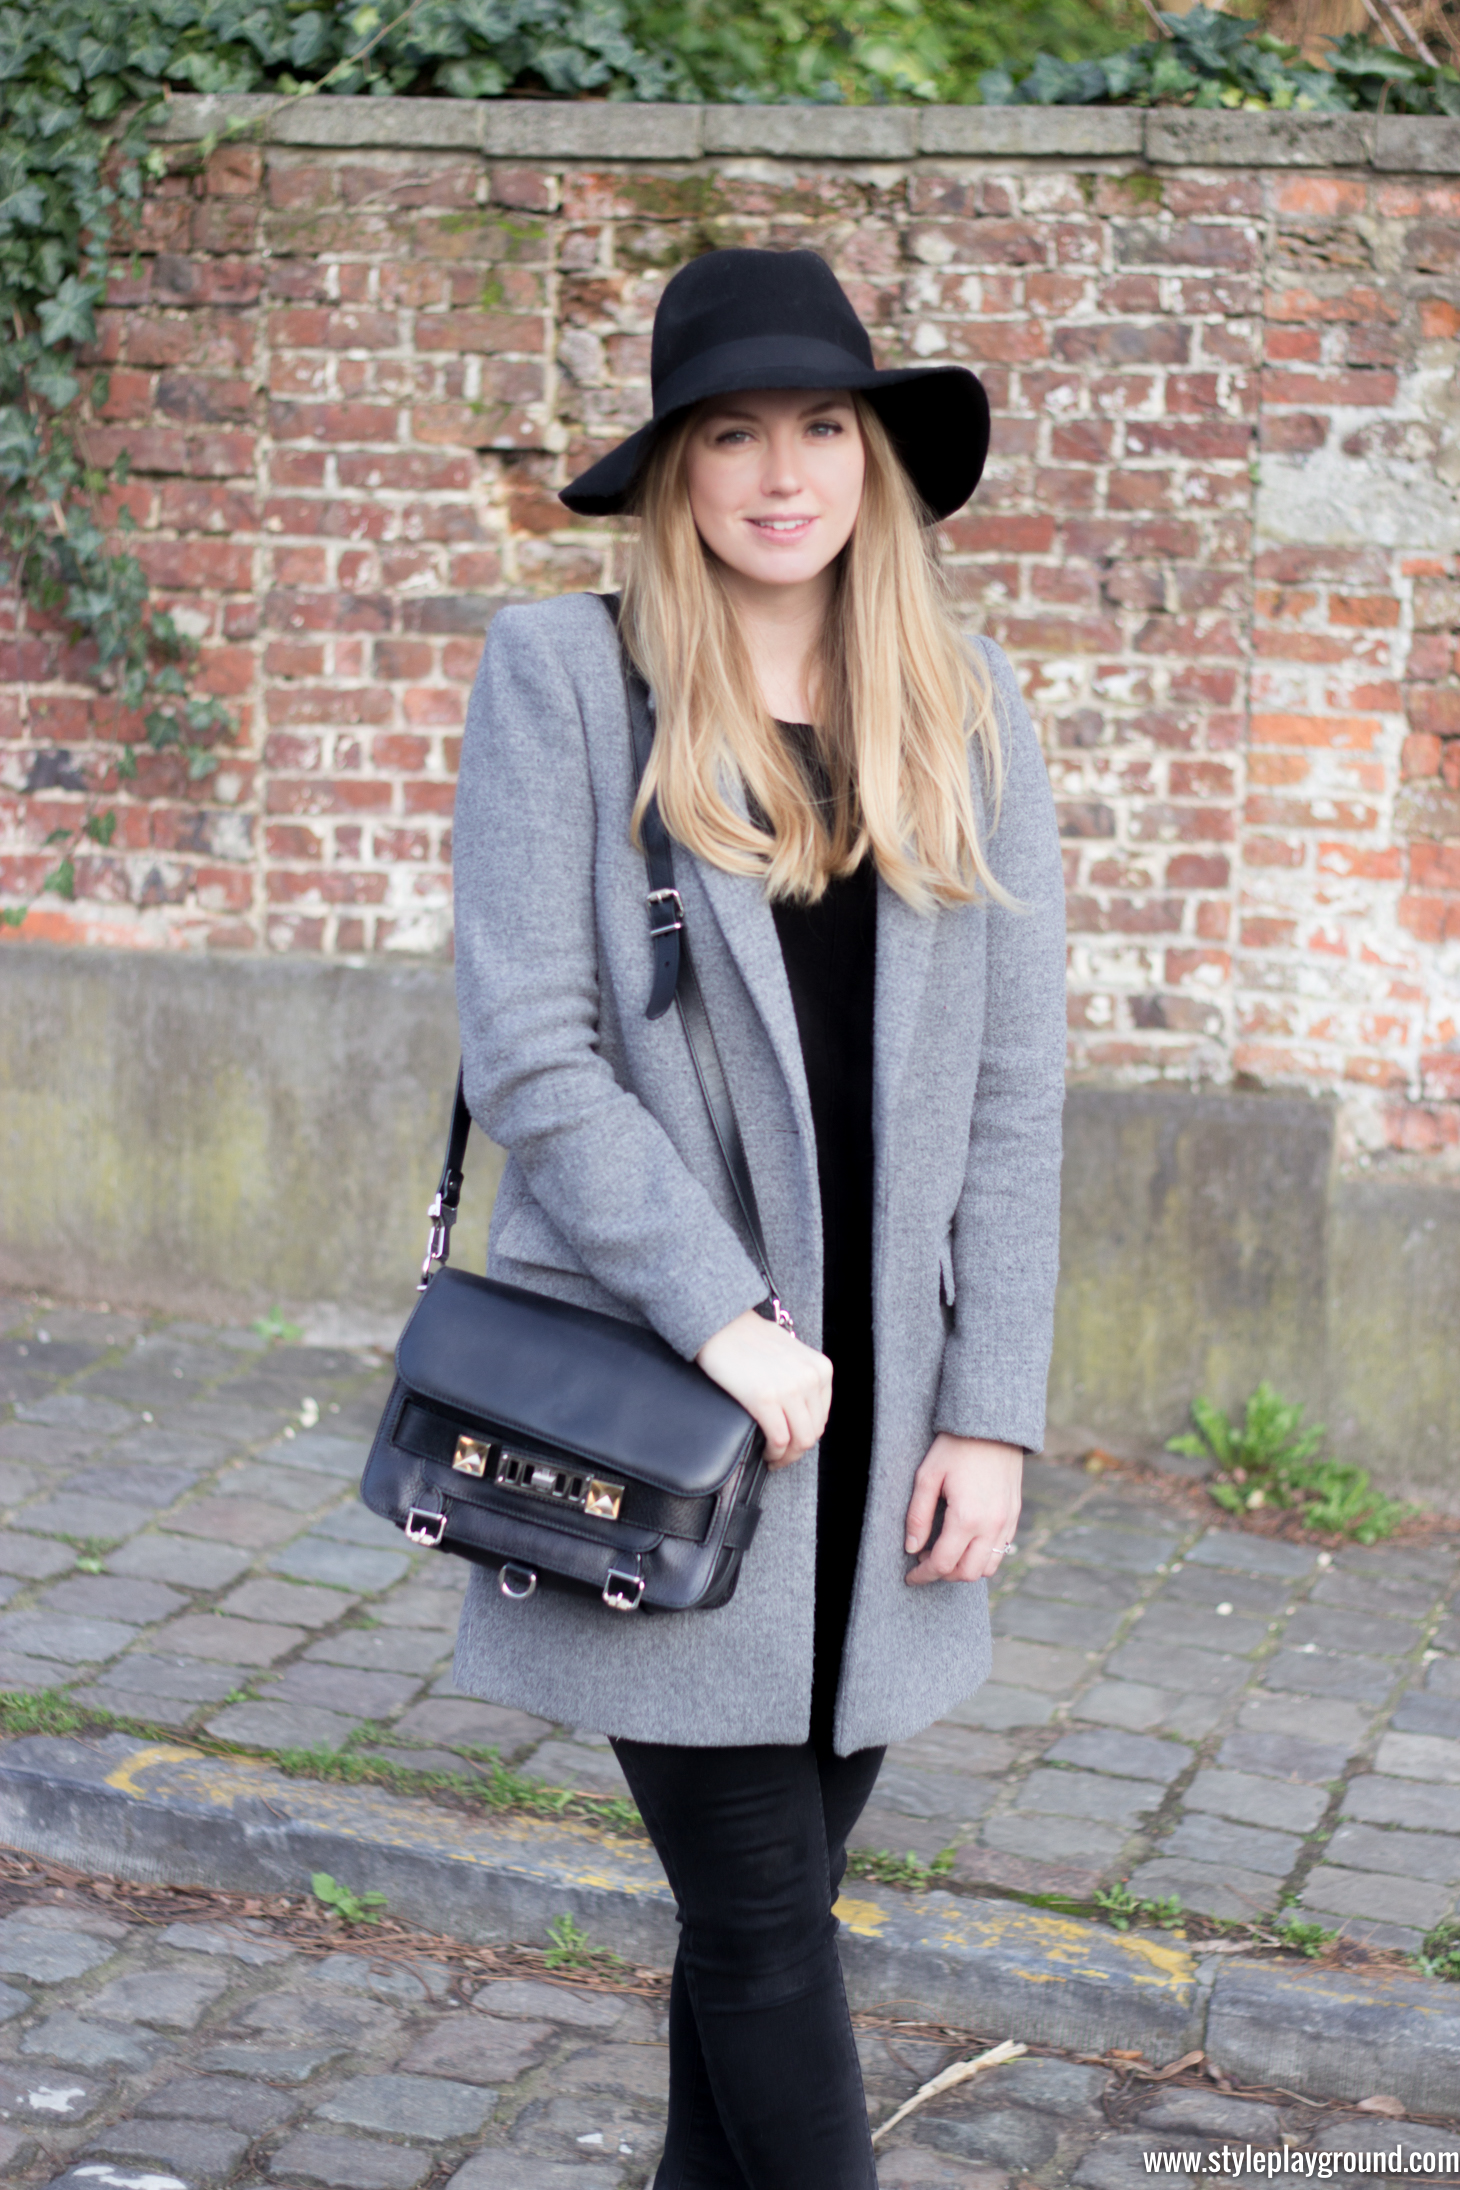 Zara coat, New Look jumper, J Brand skinny jeans, Asos booties, H&M hat, Proenza Schouler PS11 bag via www.styleplayground.com